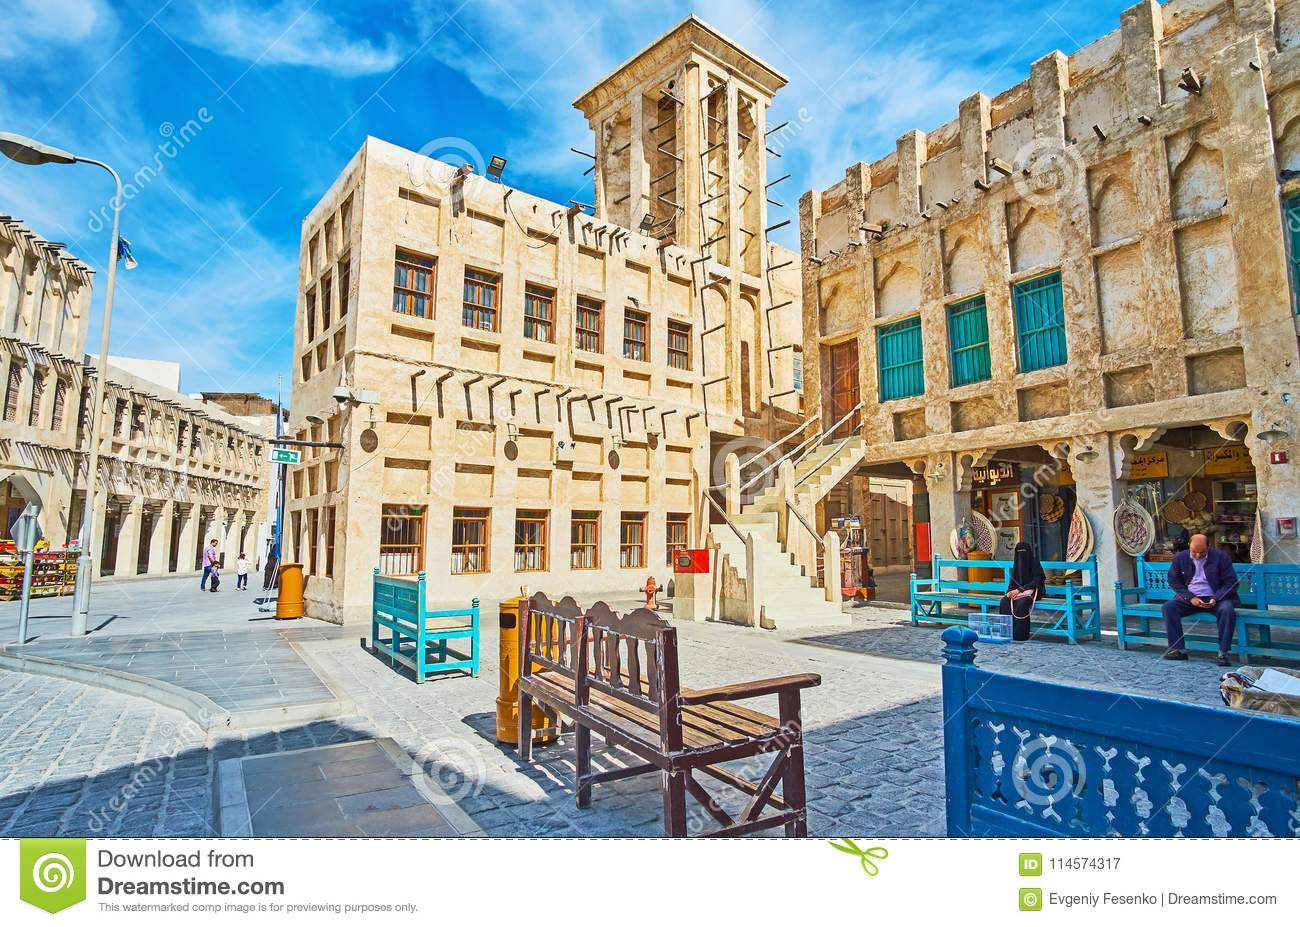 Building With Wind Tower, Souq Waqif, Doha, Qatar Editorial